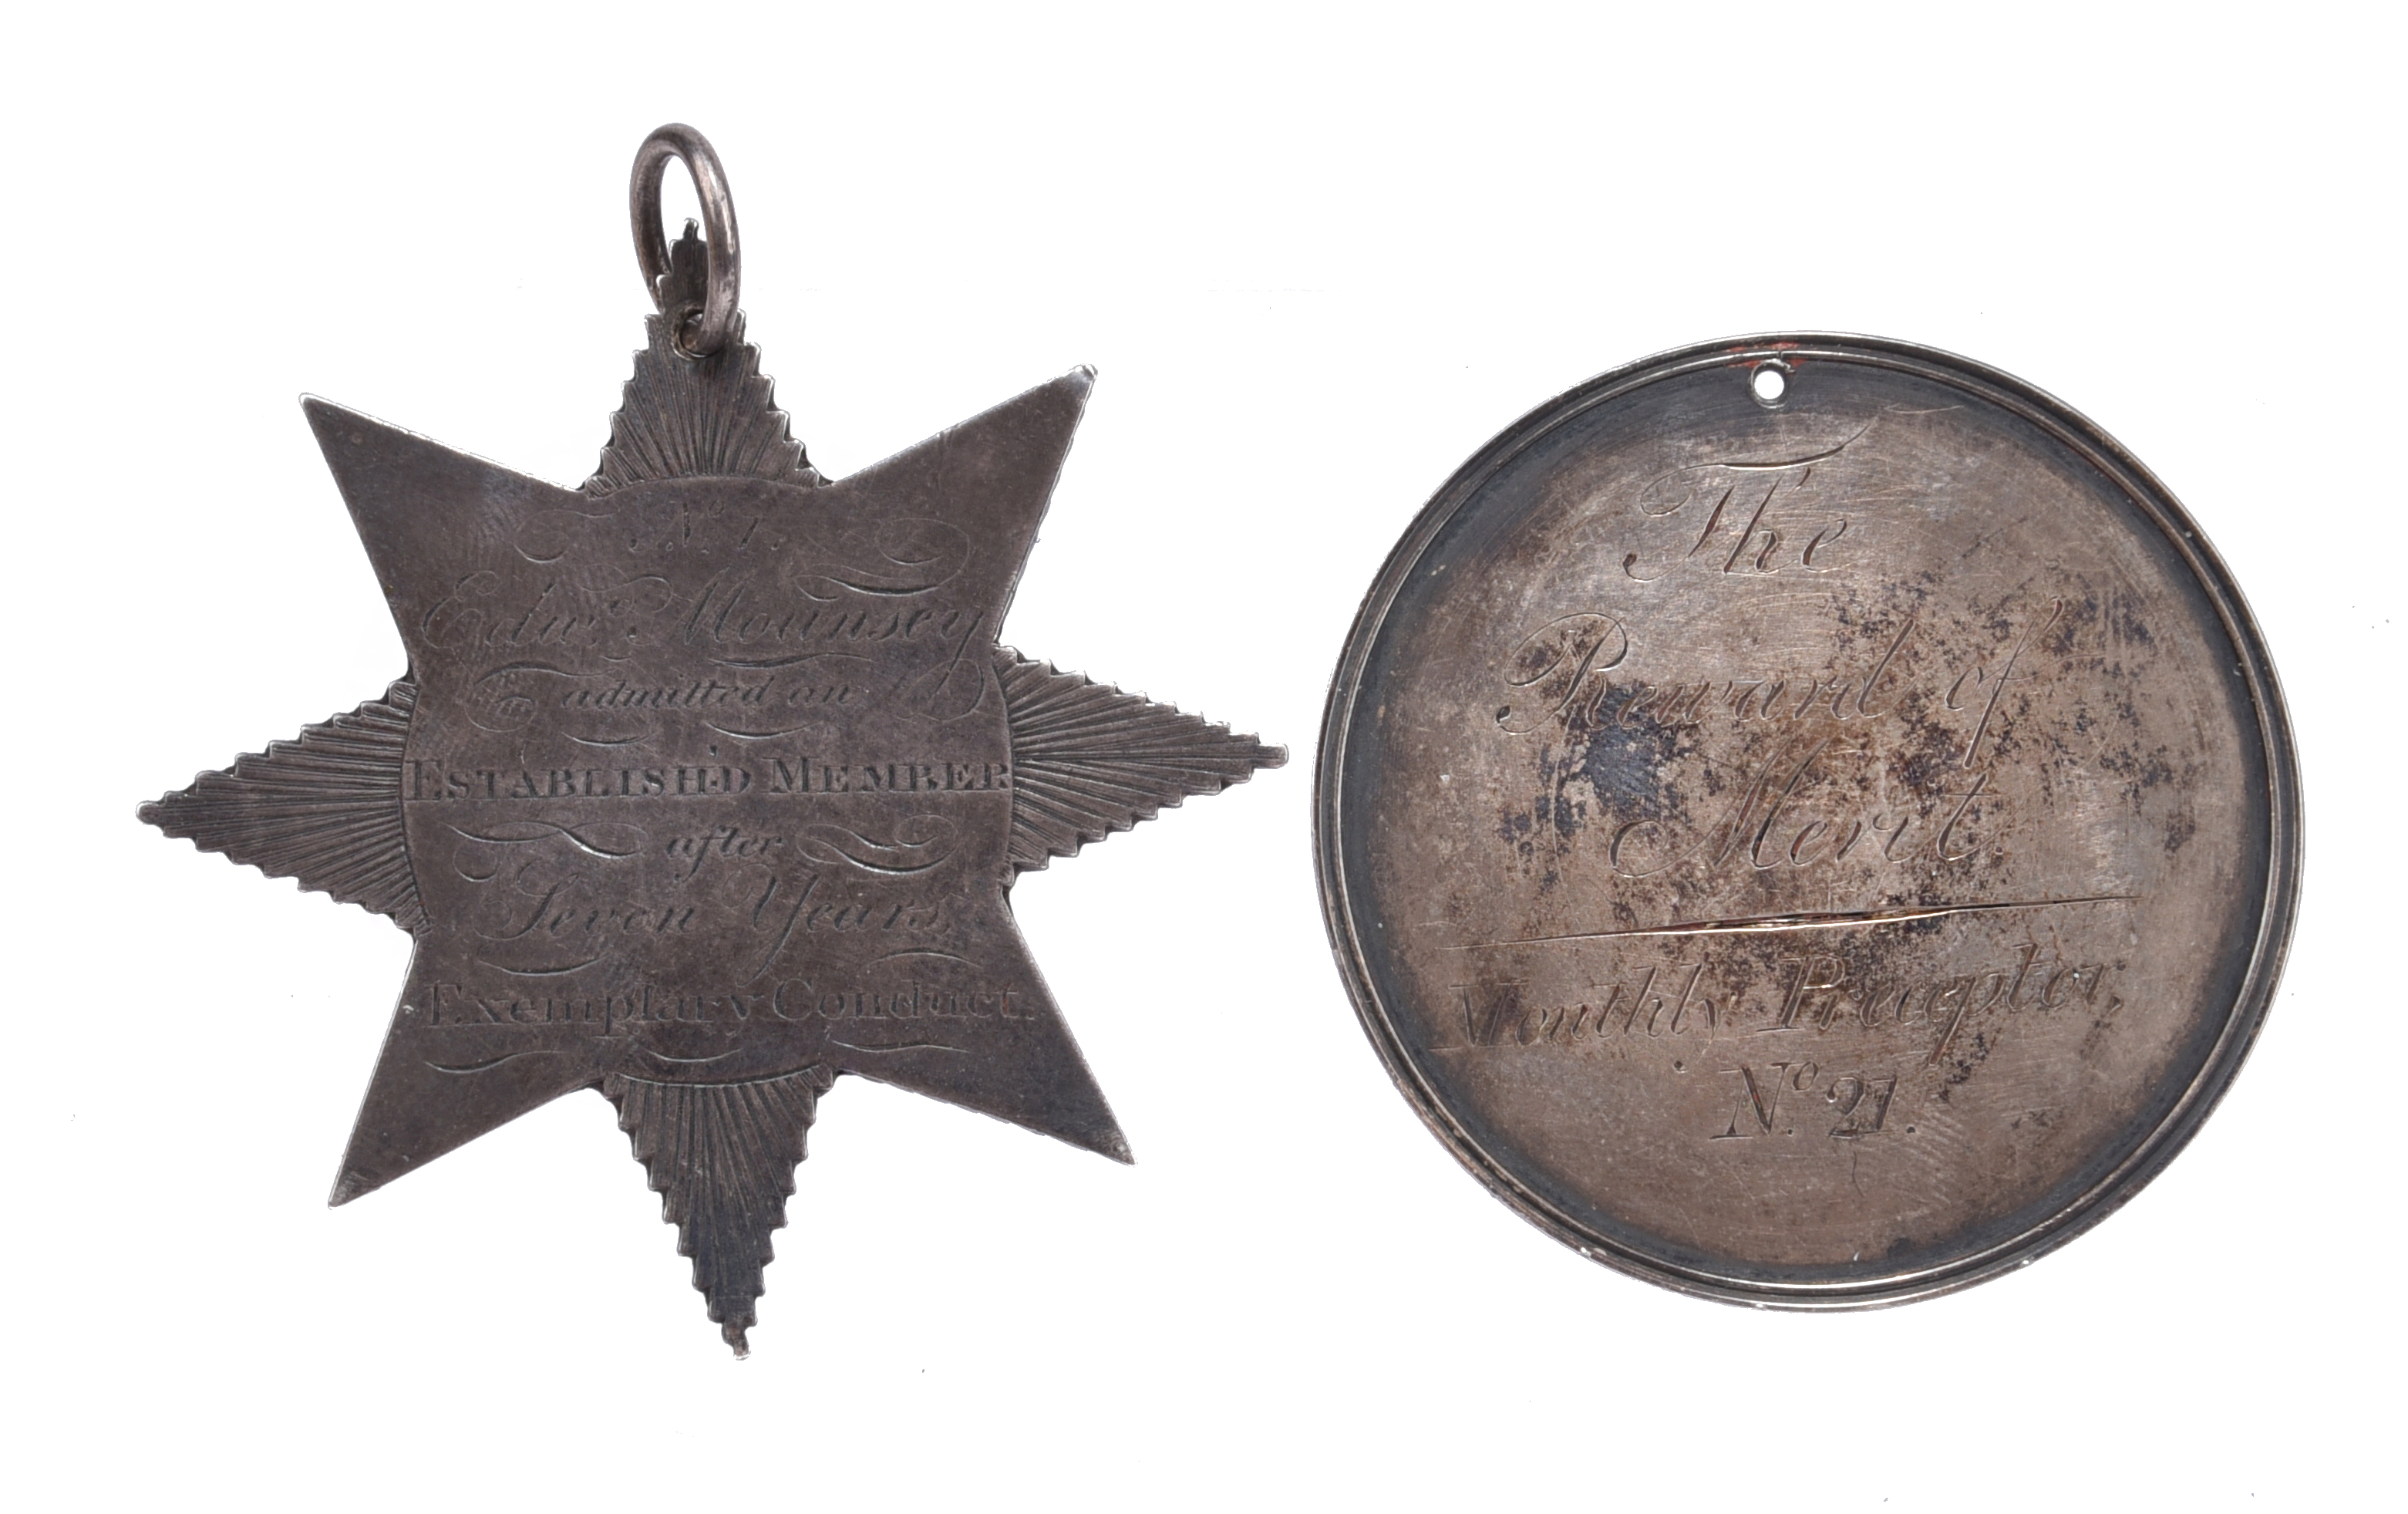 Education: two English engraved silver medals: Circus Street School Liverpool Class of Honour - Image 2 of 2